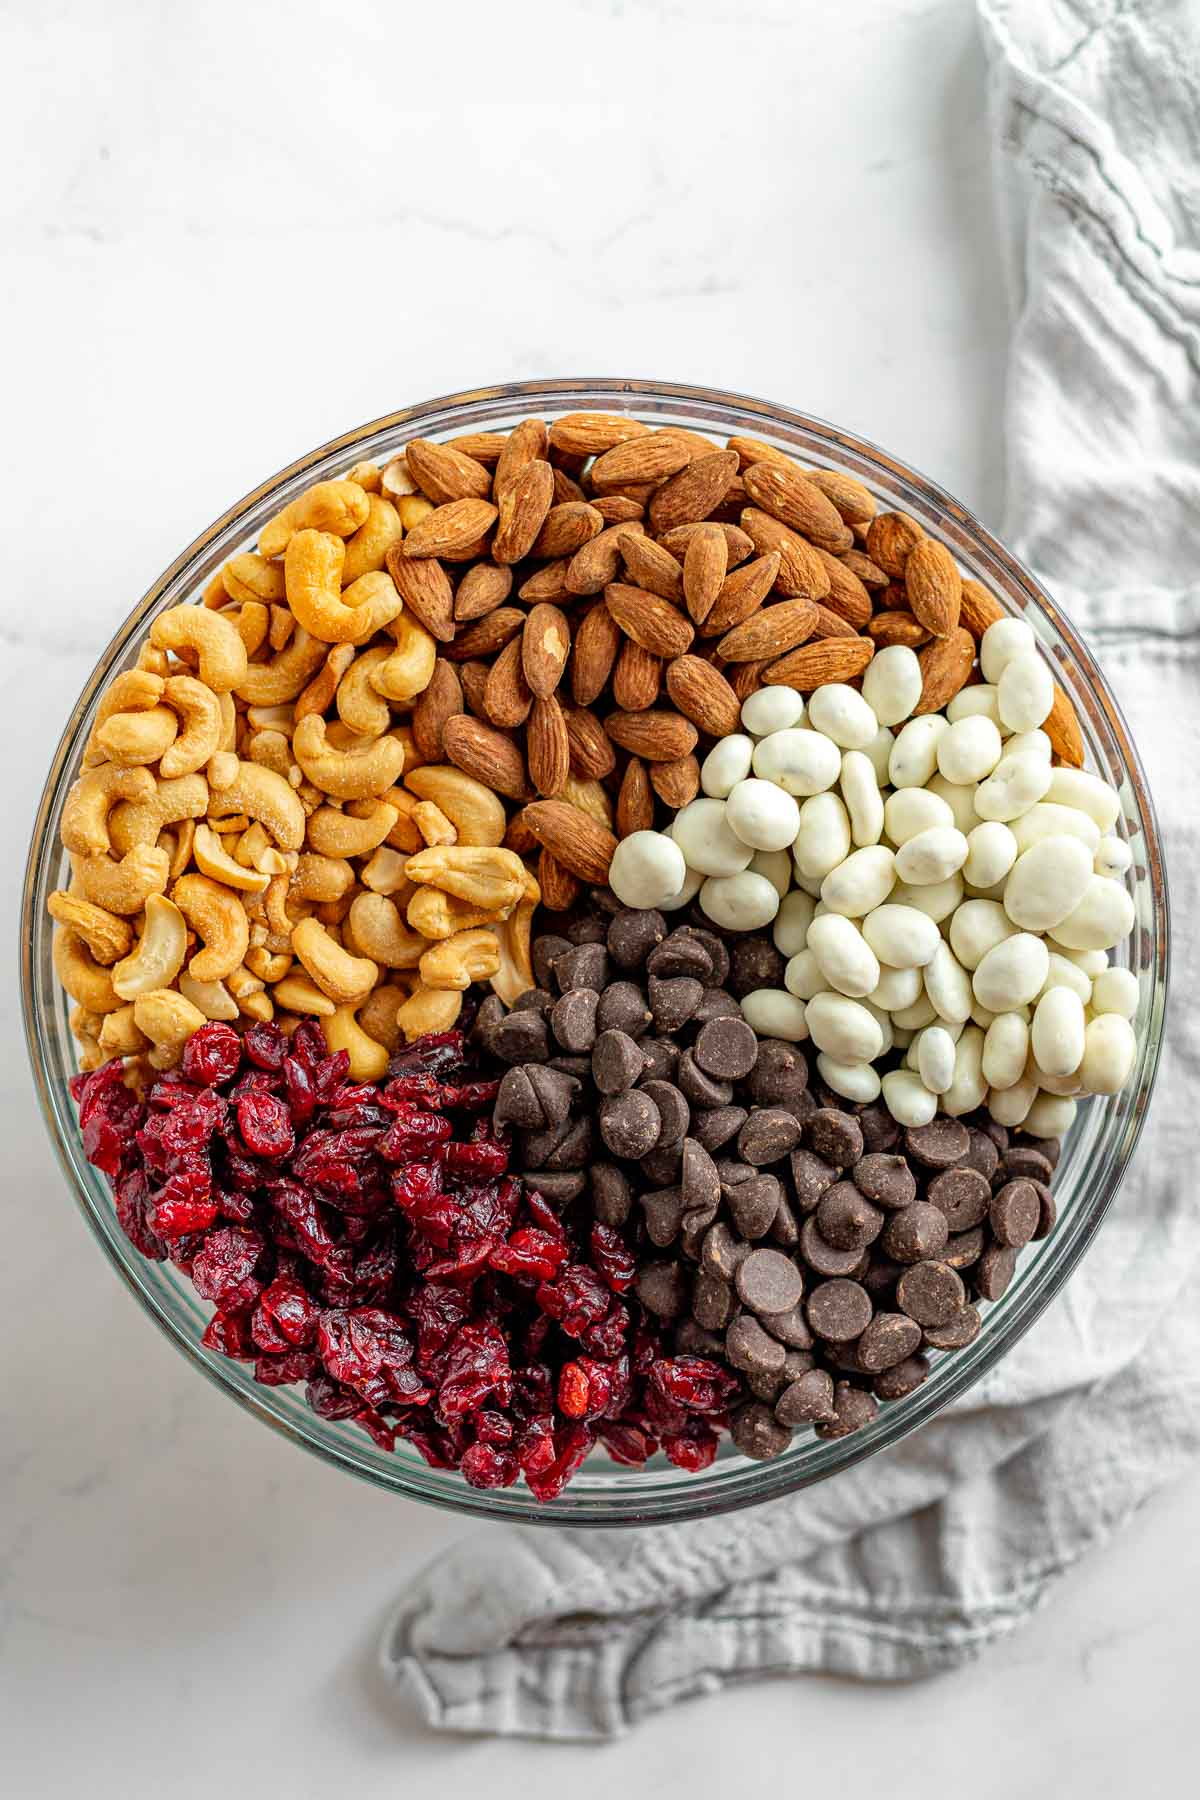 Cranberry Trail Mix in glass bowl before mixing